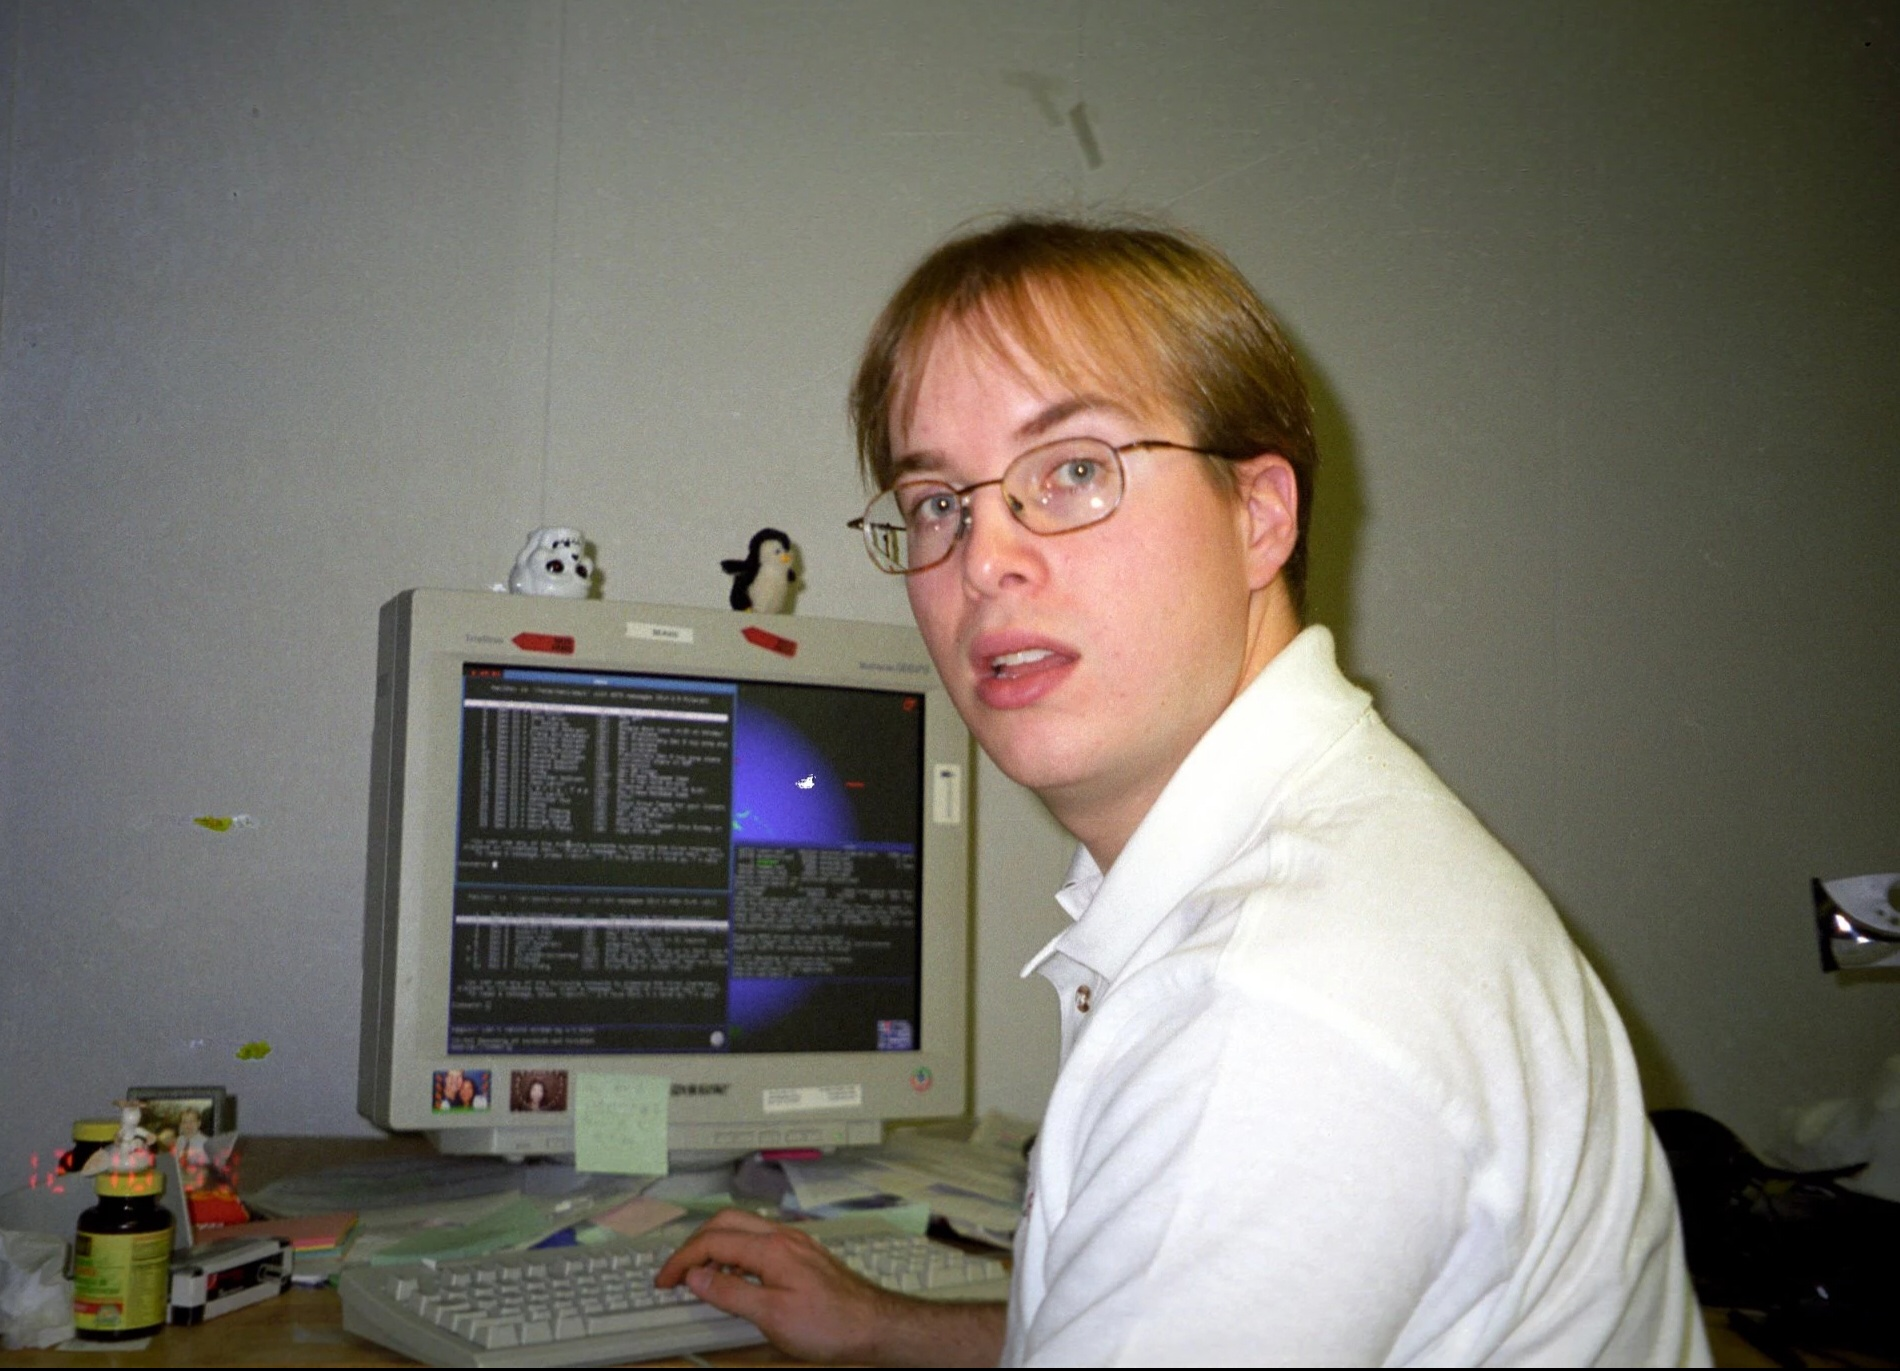 Gmail's creator, Paul Buchheit, at his desk at Google in 1999